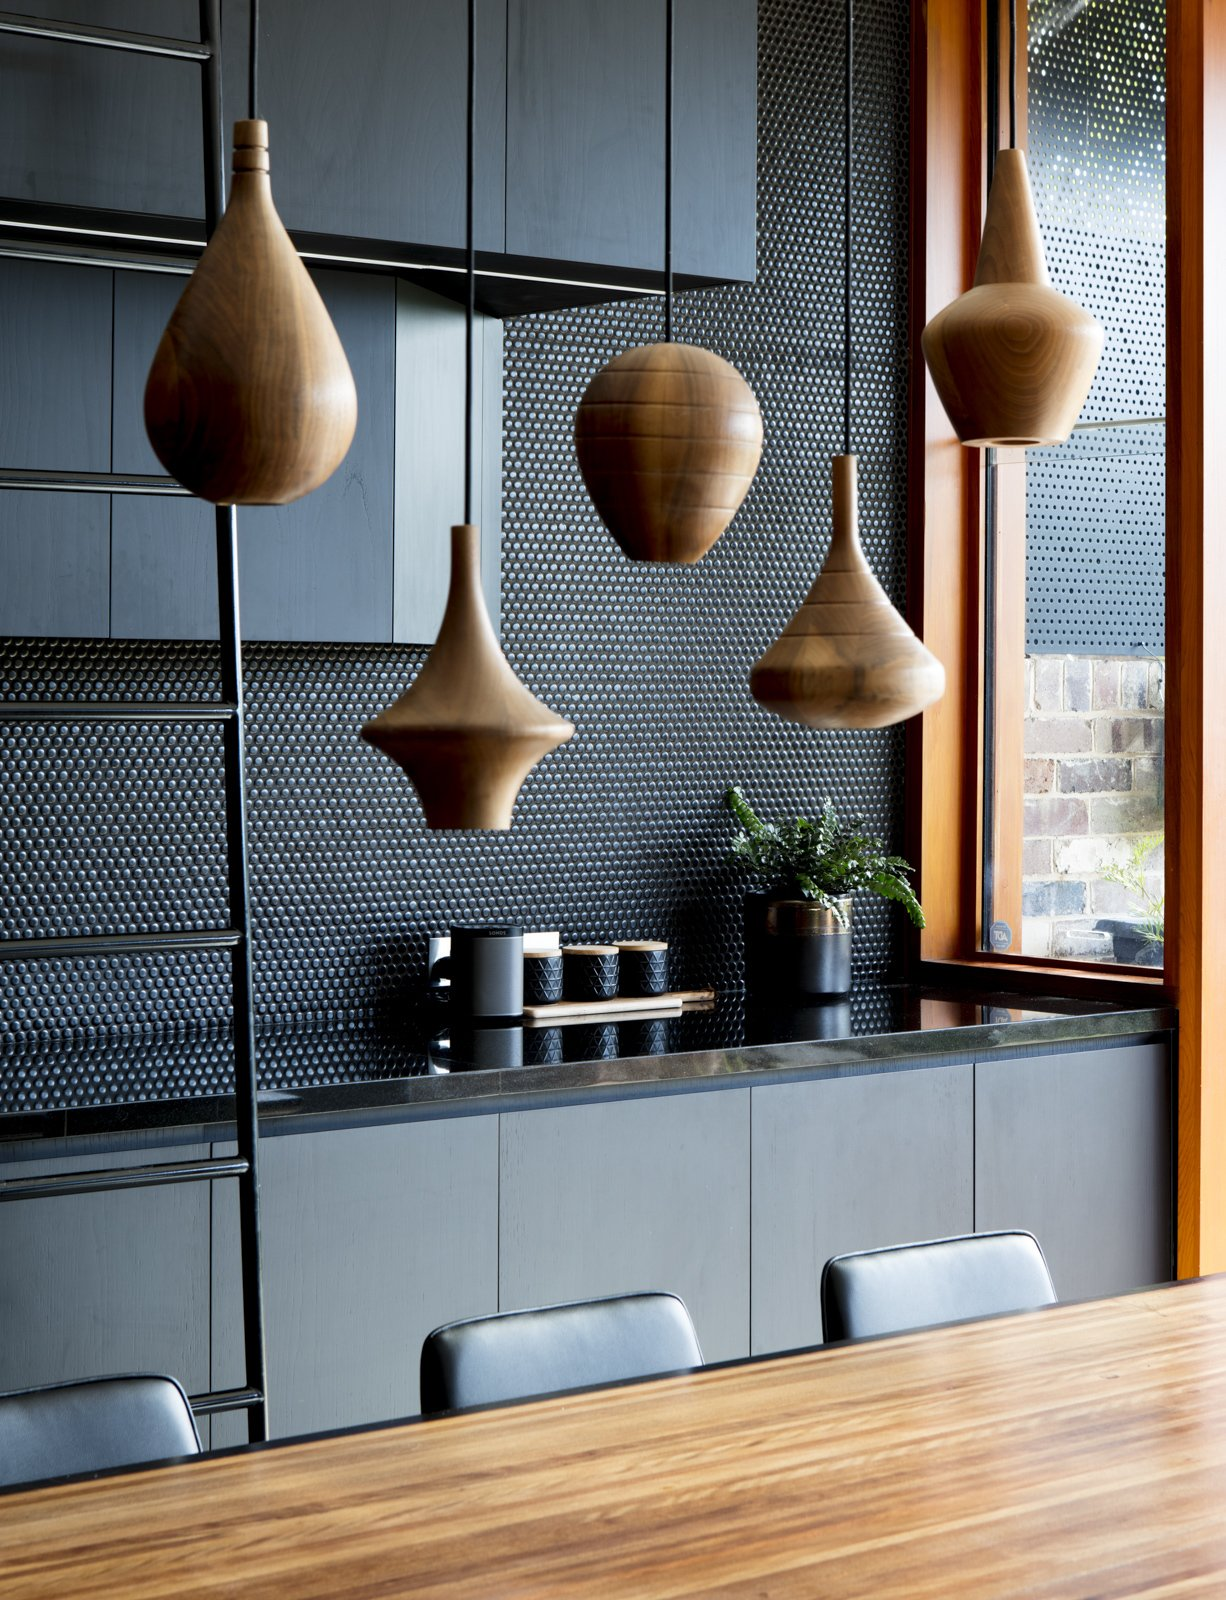 Dining Room, Table, Storage, Chair, and Pendant Lighting The perforated black walls are juxtaposed against warm wooden details.  Photo 5 of 9 in A Dark Sydney Home Finds Light With a Unifying Expansion